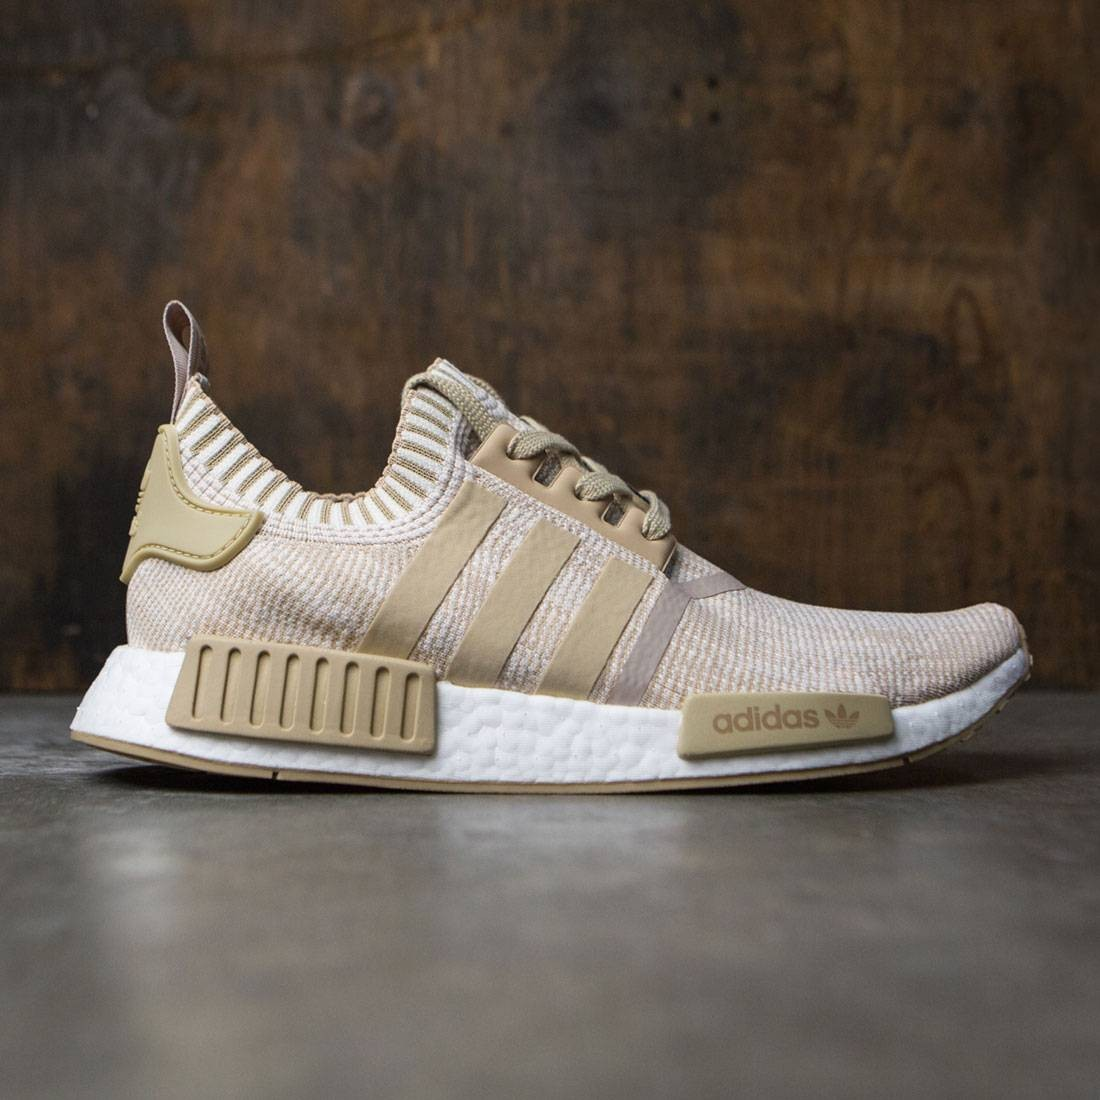 d197481f5dc5c Adidas Nmd Khaki Mens kenmore-cleaning.co.uk